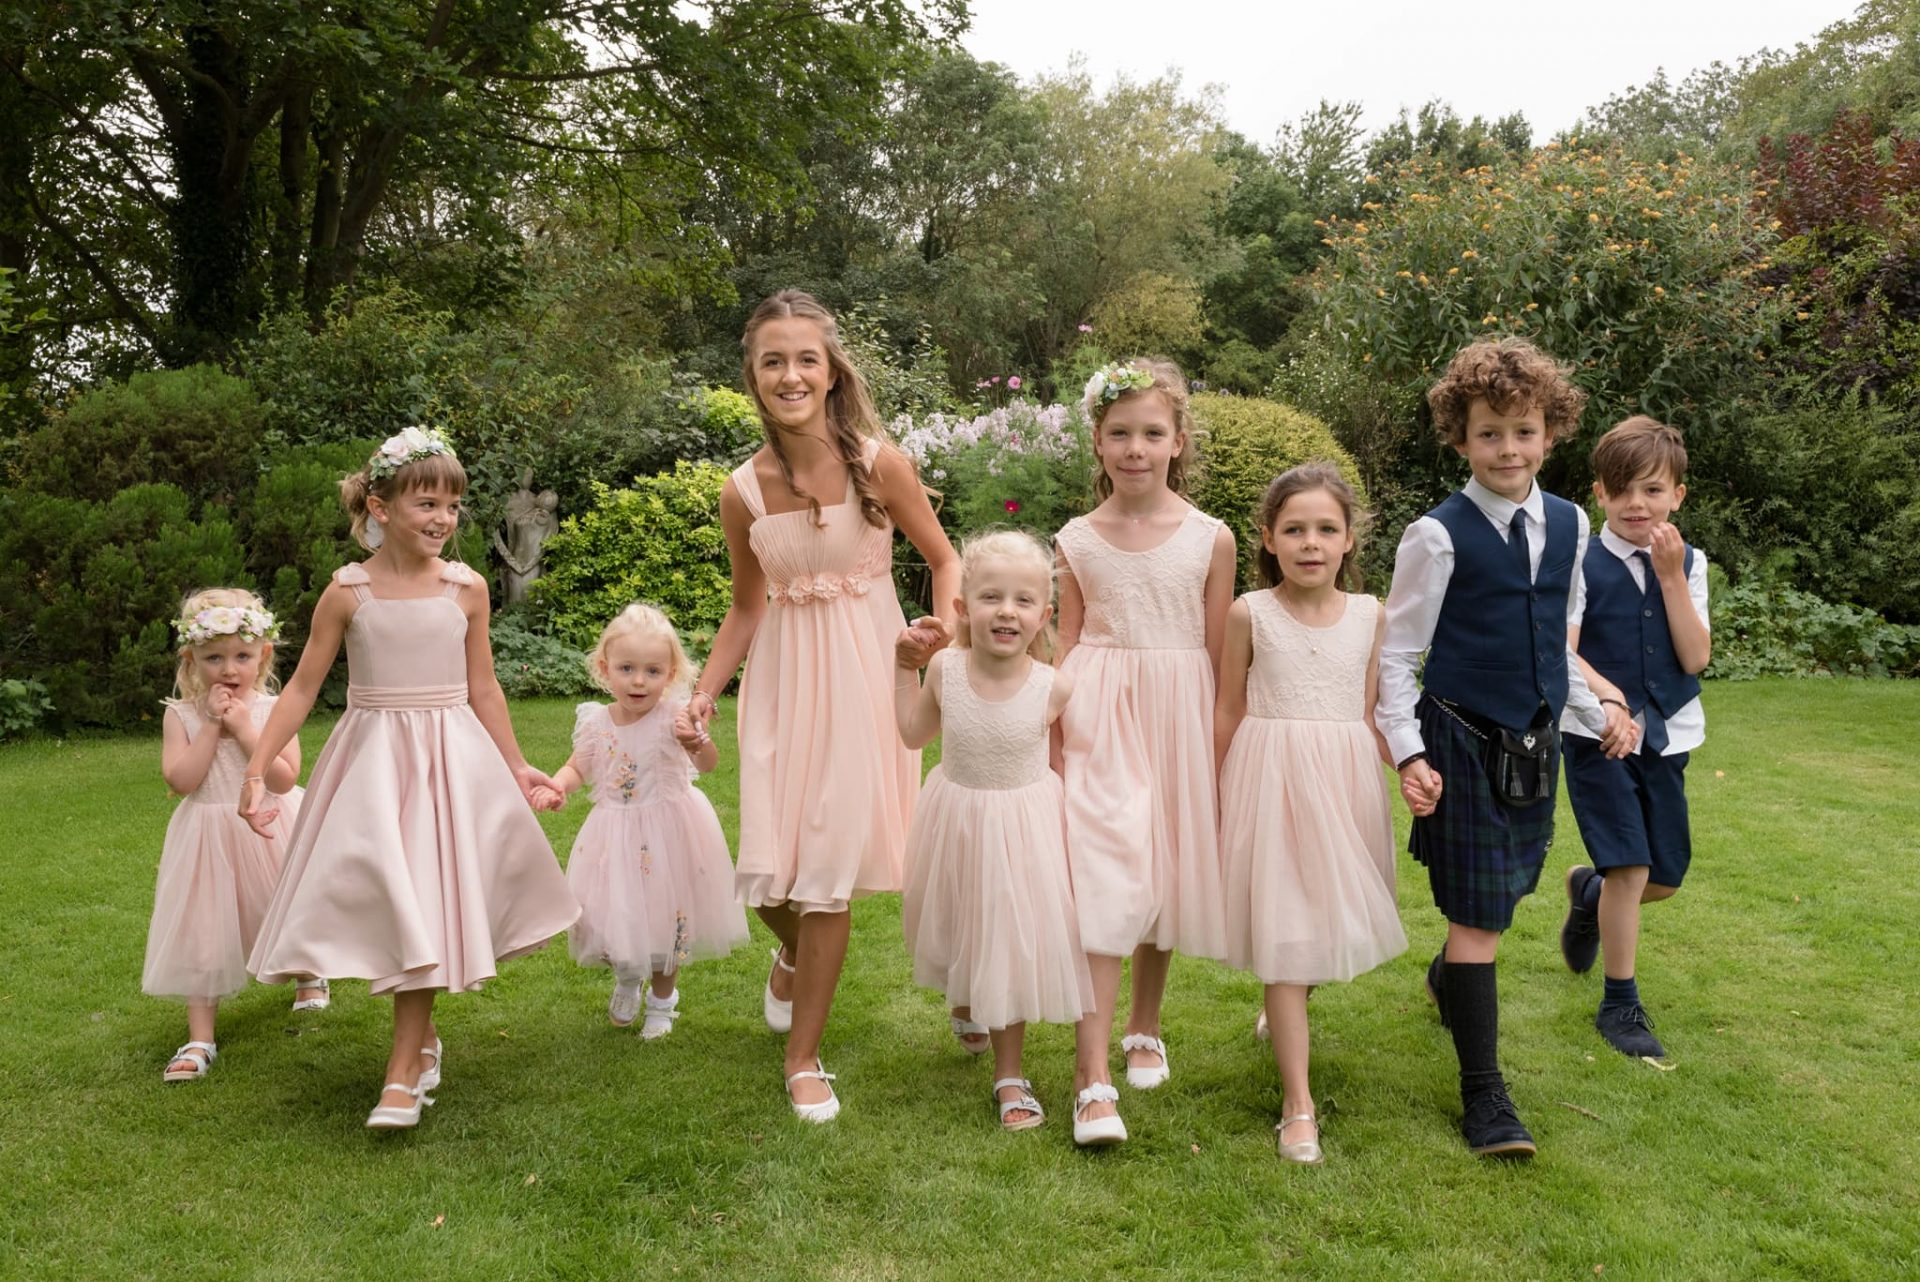 Flower girls and page boys walking hand in hand for a group photo